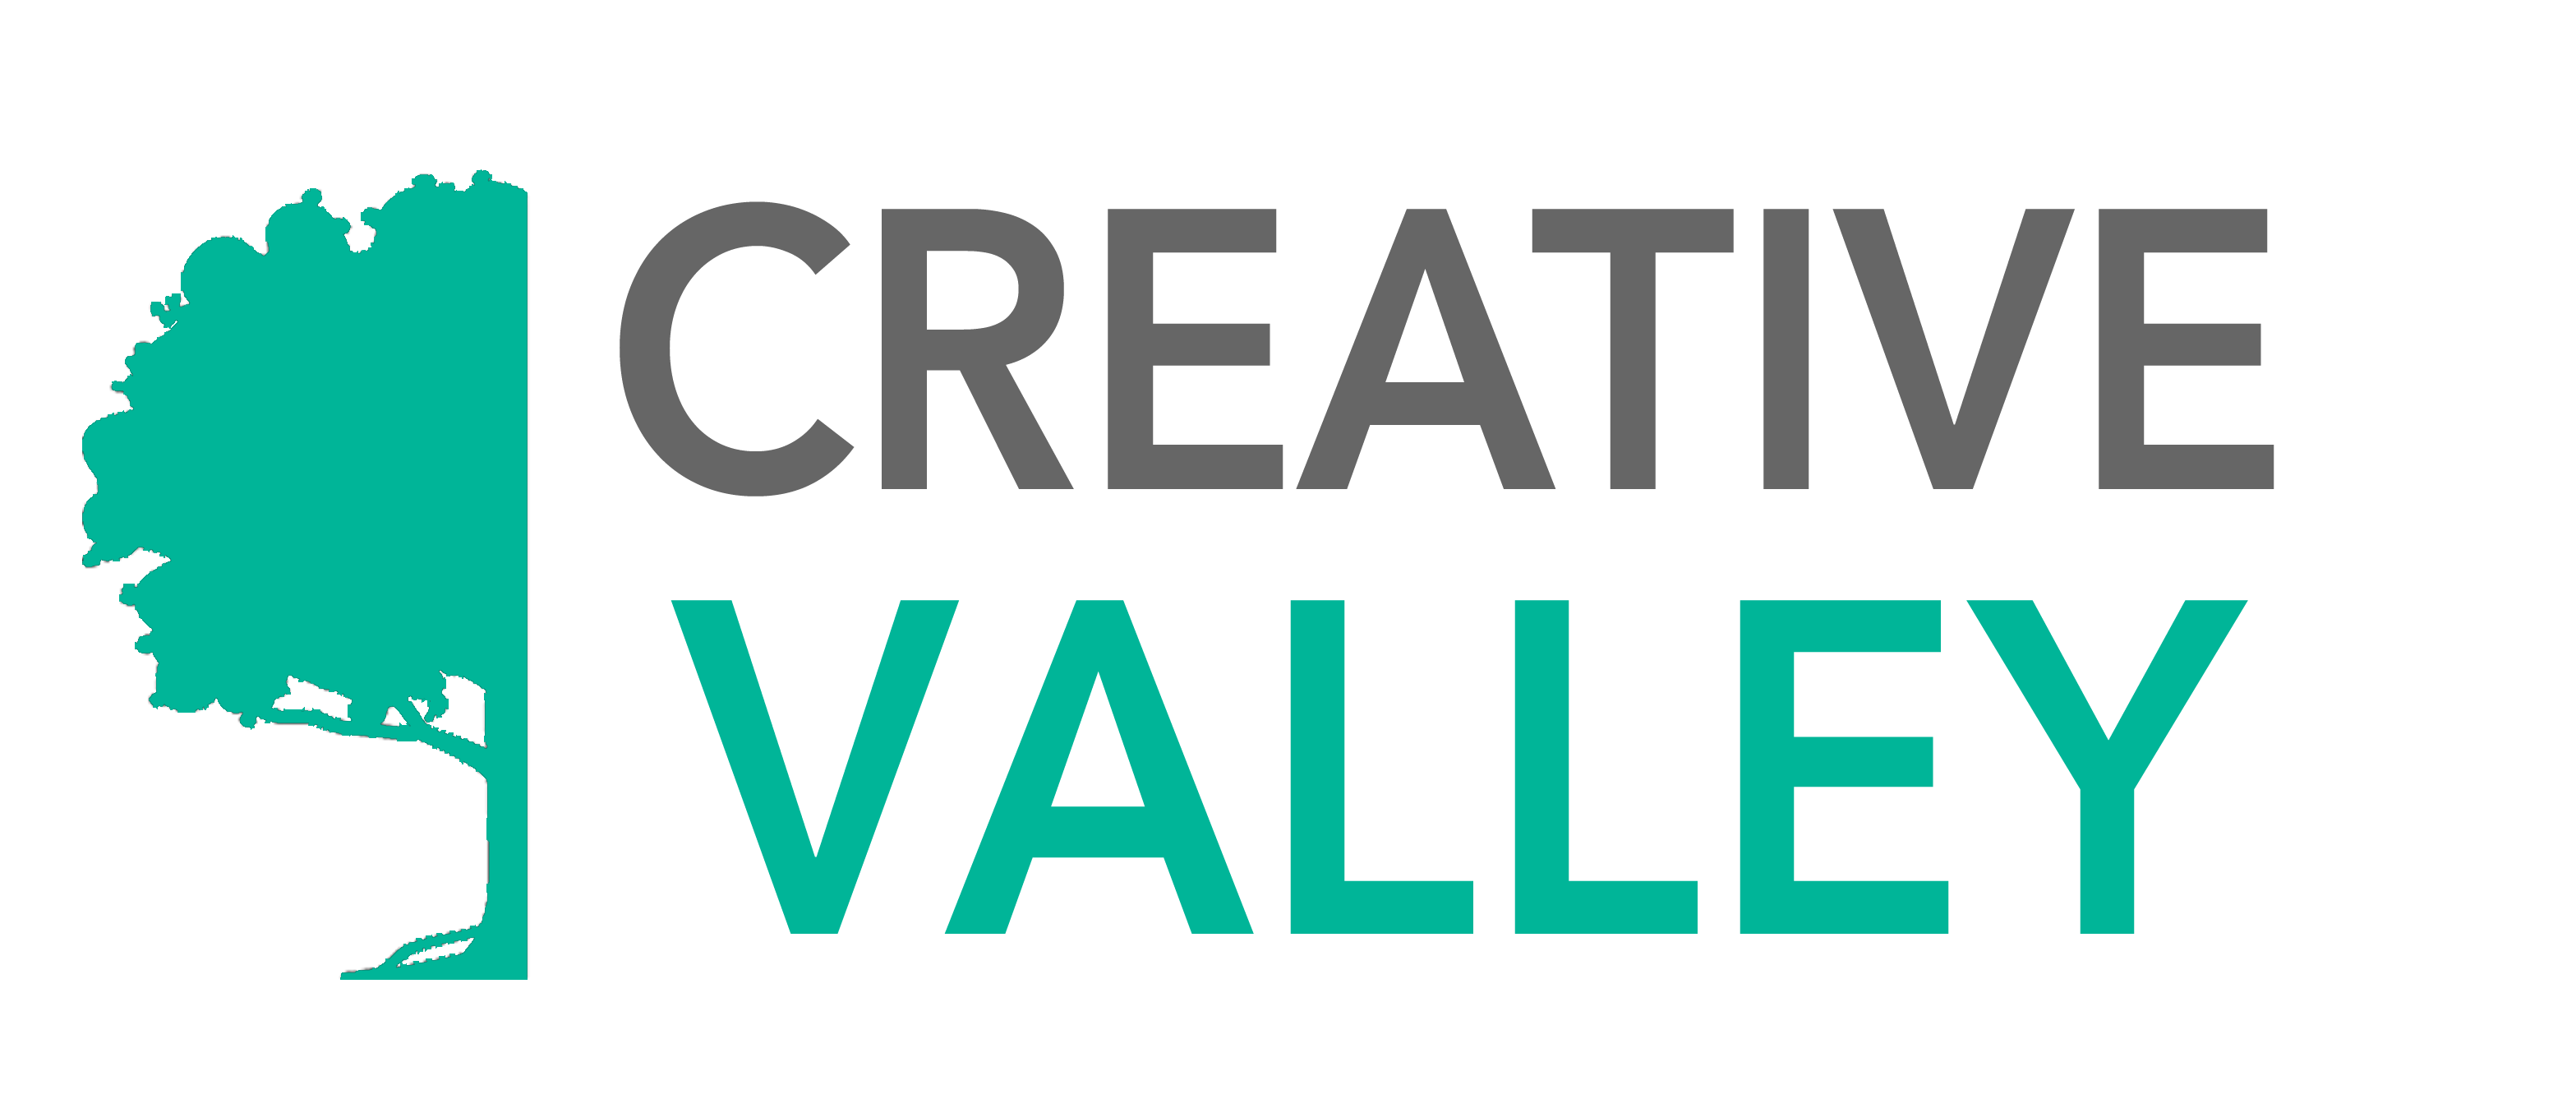 Events by Creative Valley